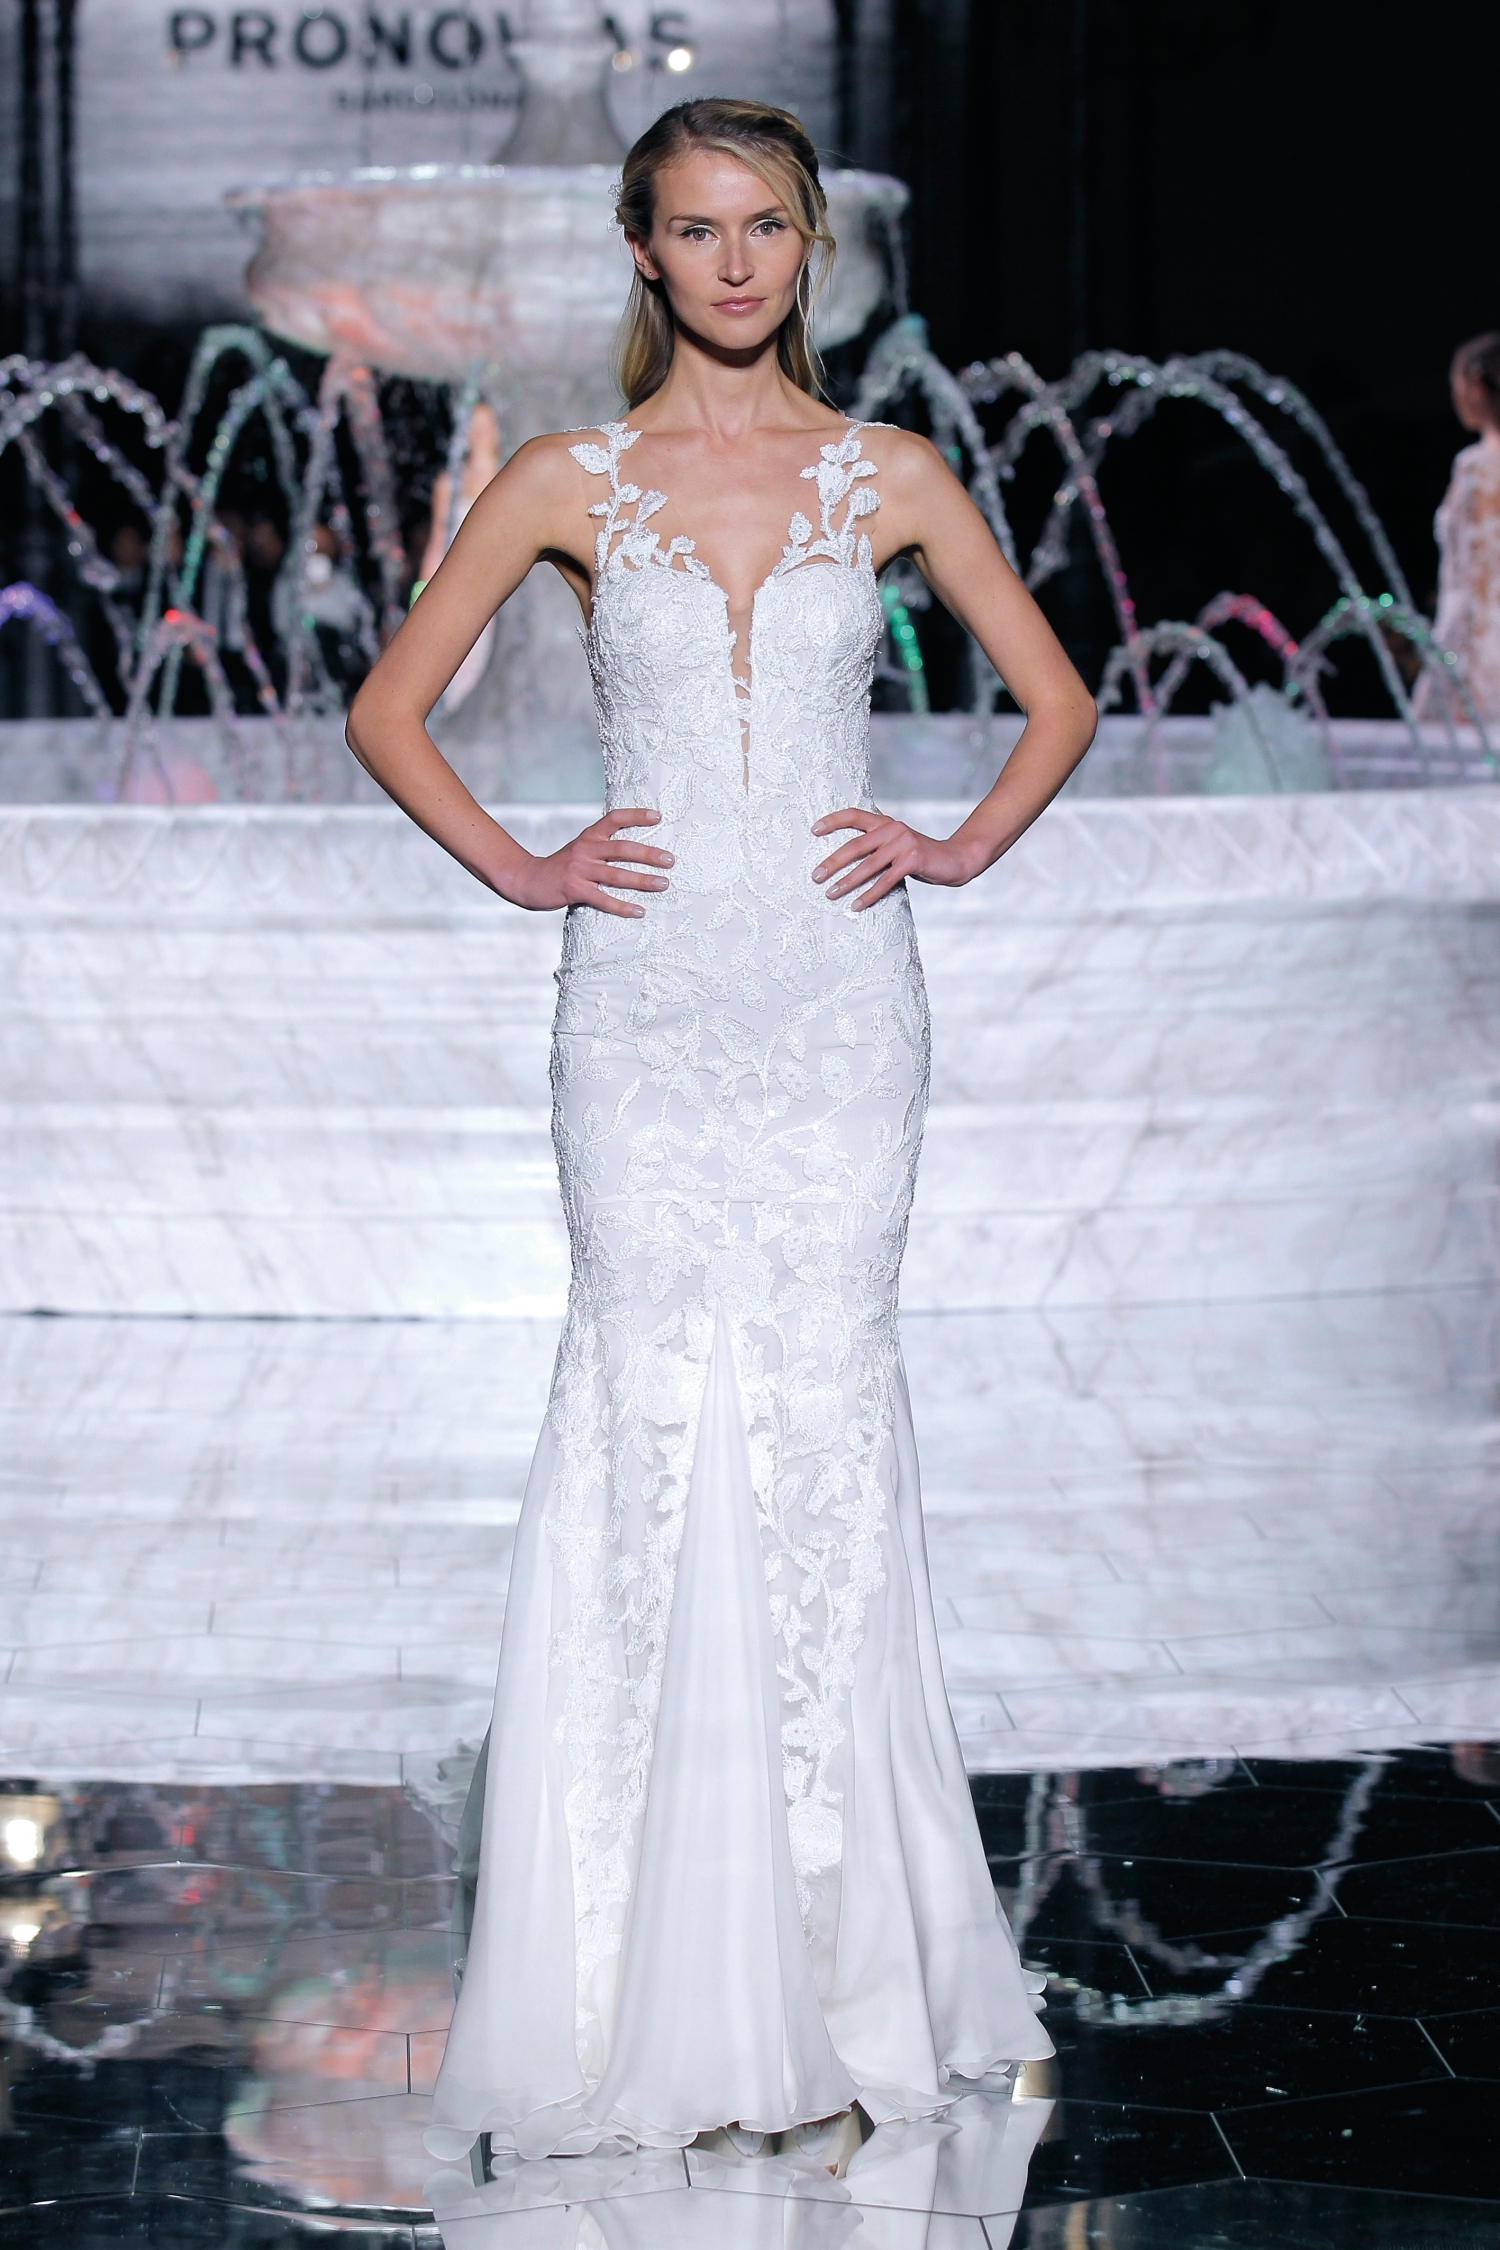 1-PRONOVIAS FASHION SHOW_Romana